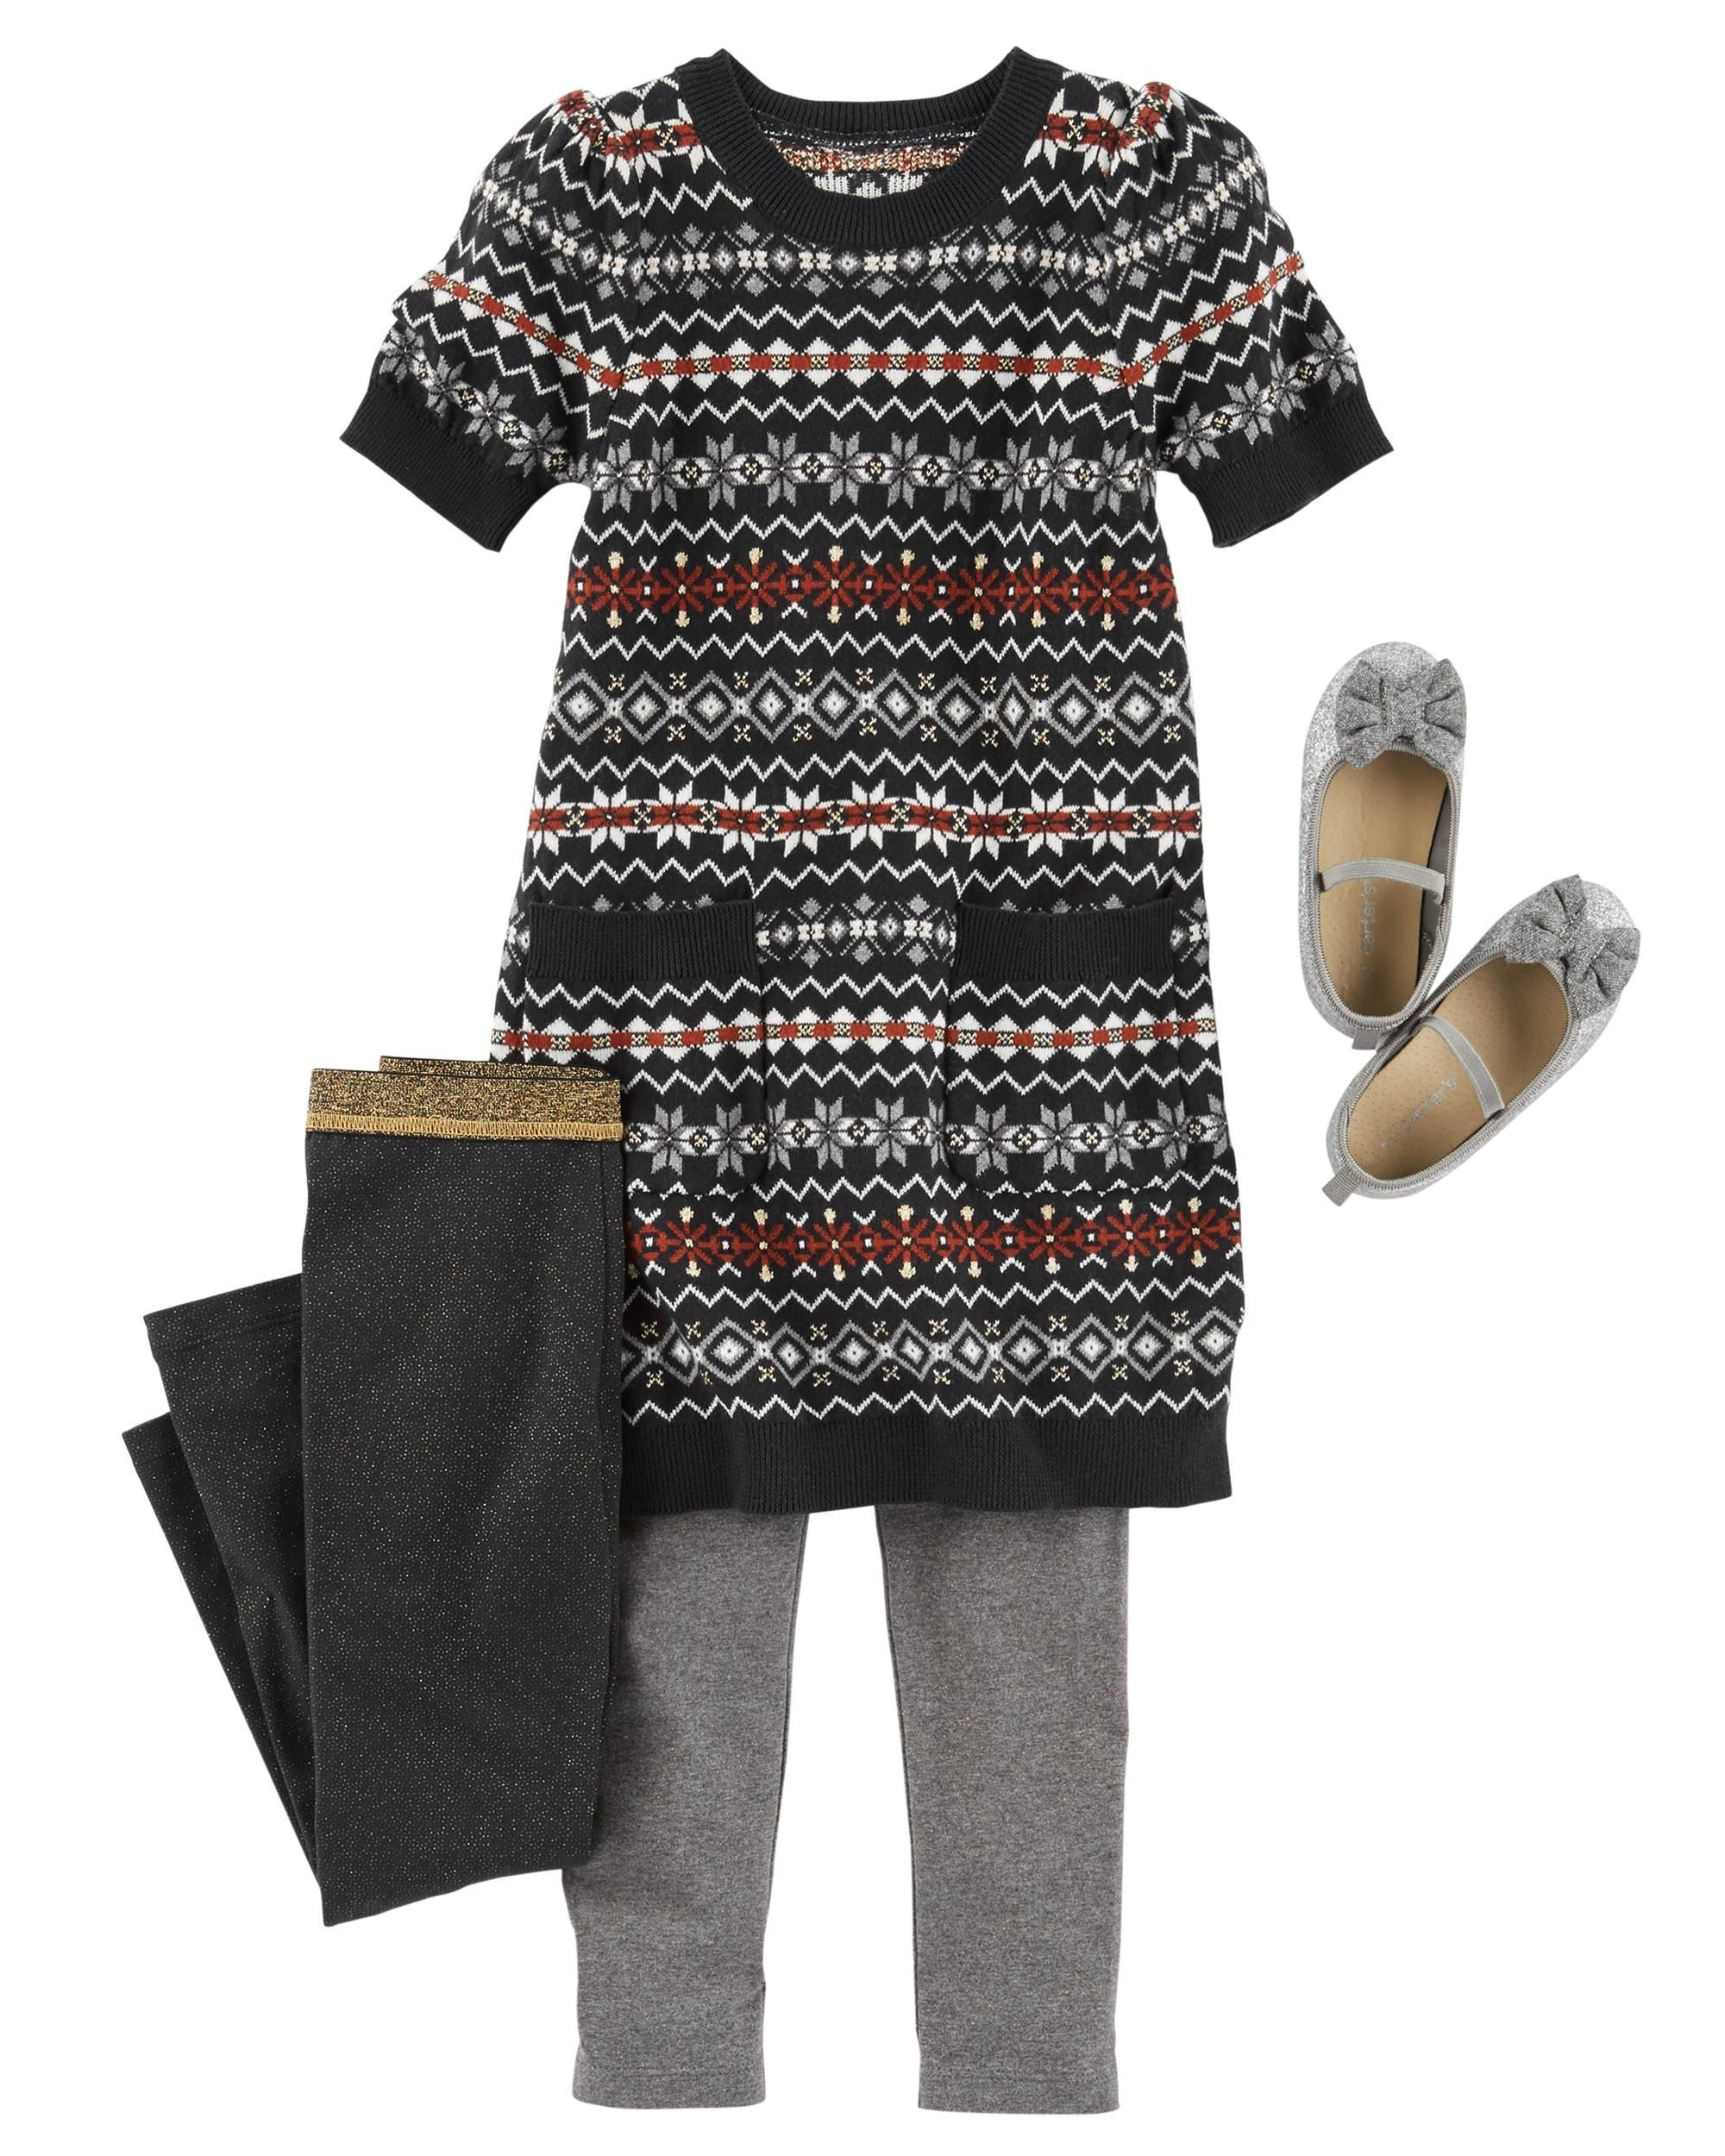 This Fair Isle Sparkle Sweater Dress is perfect for all holiday